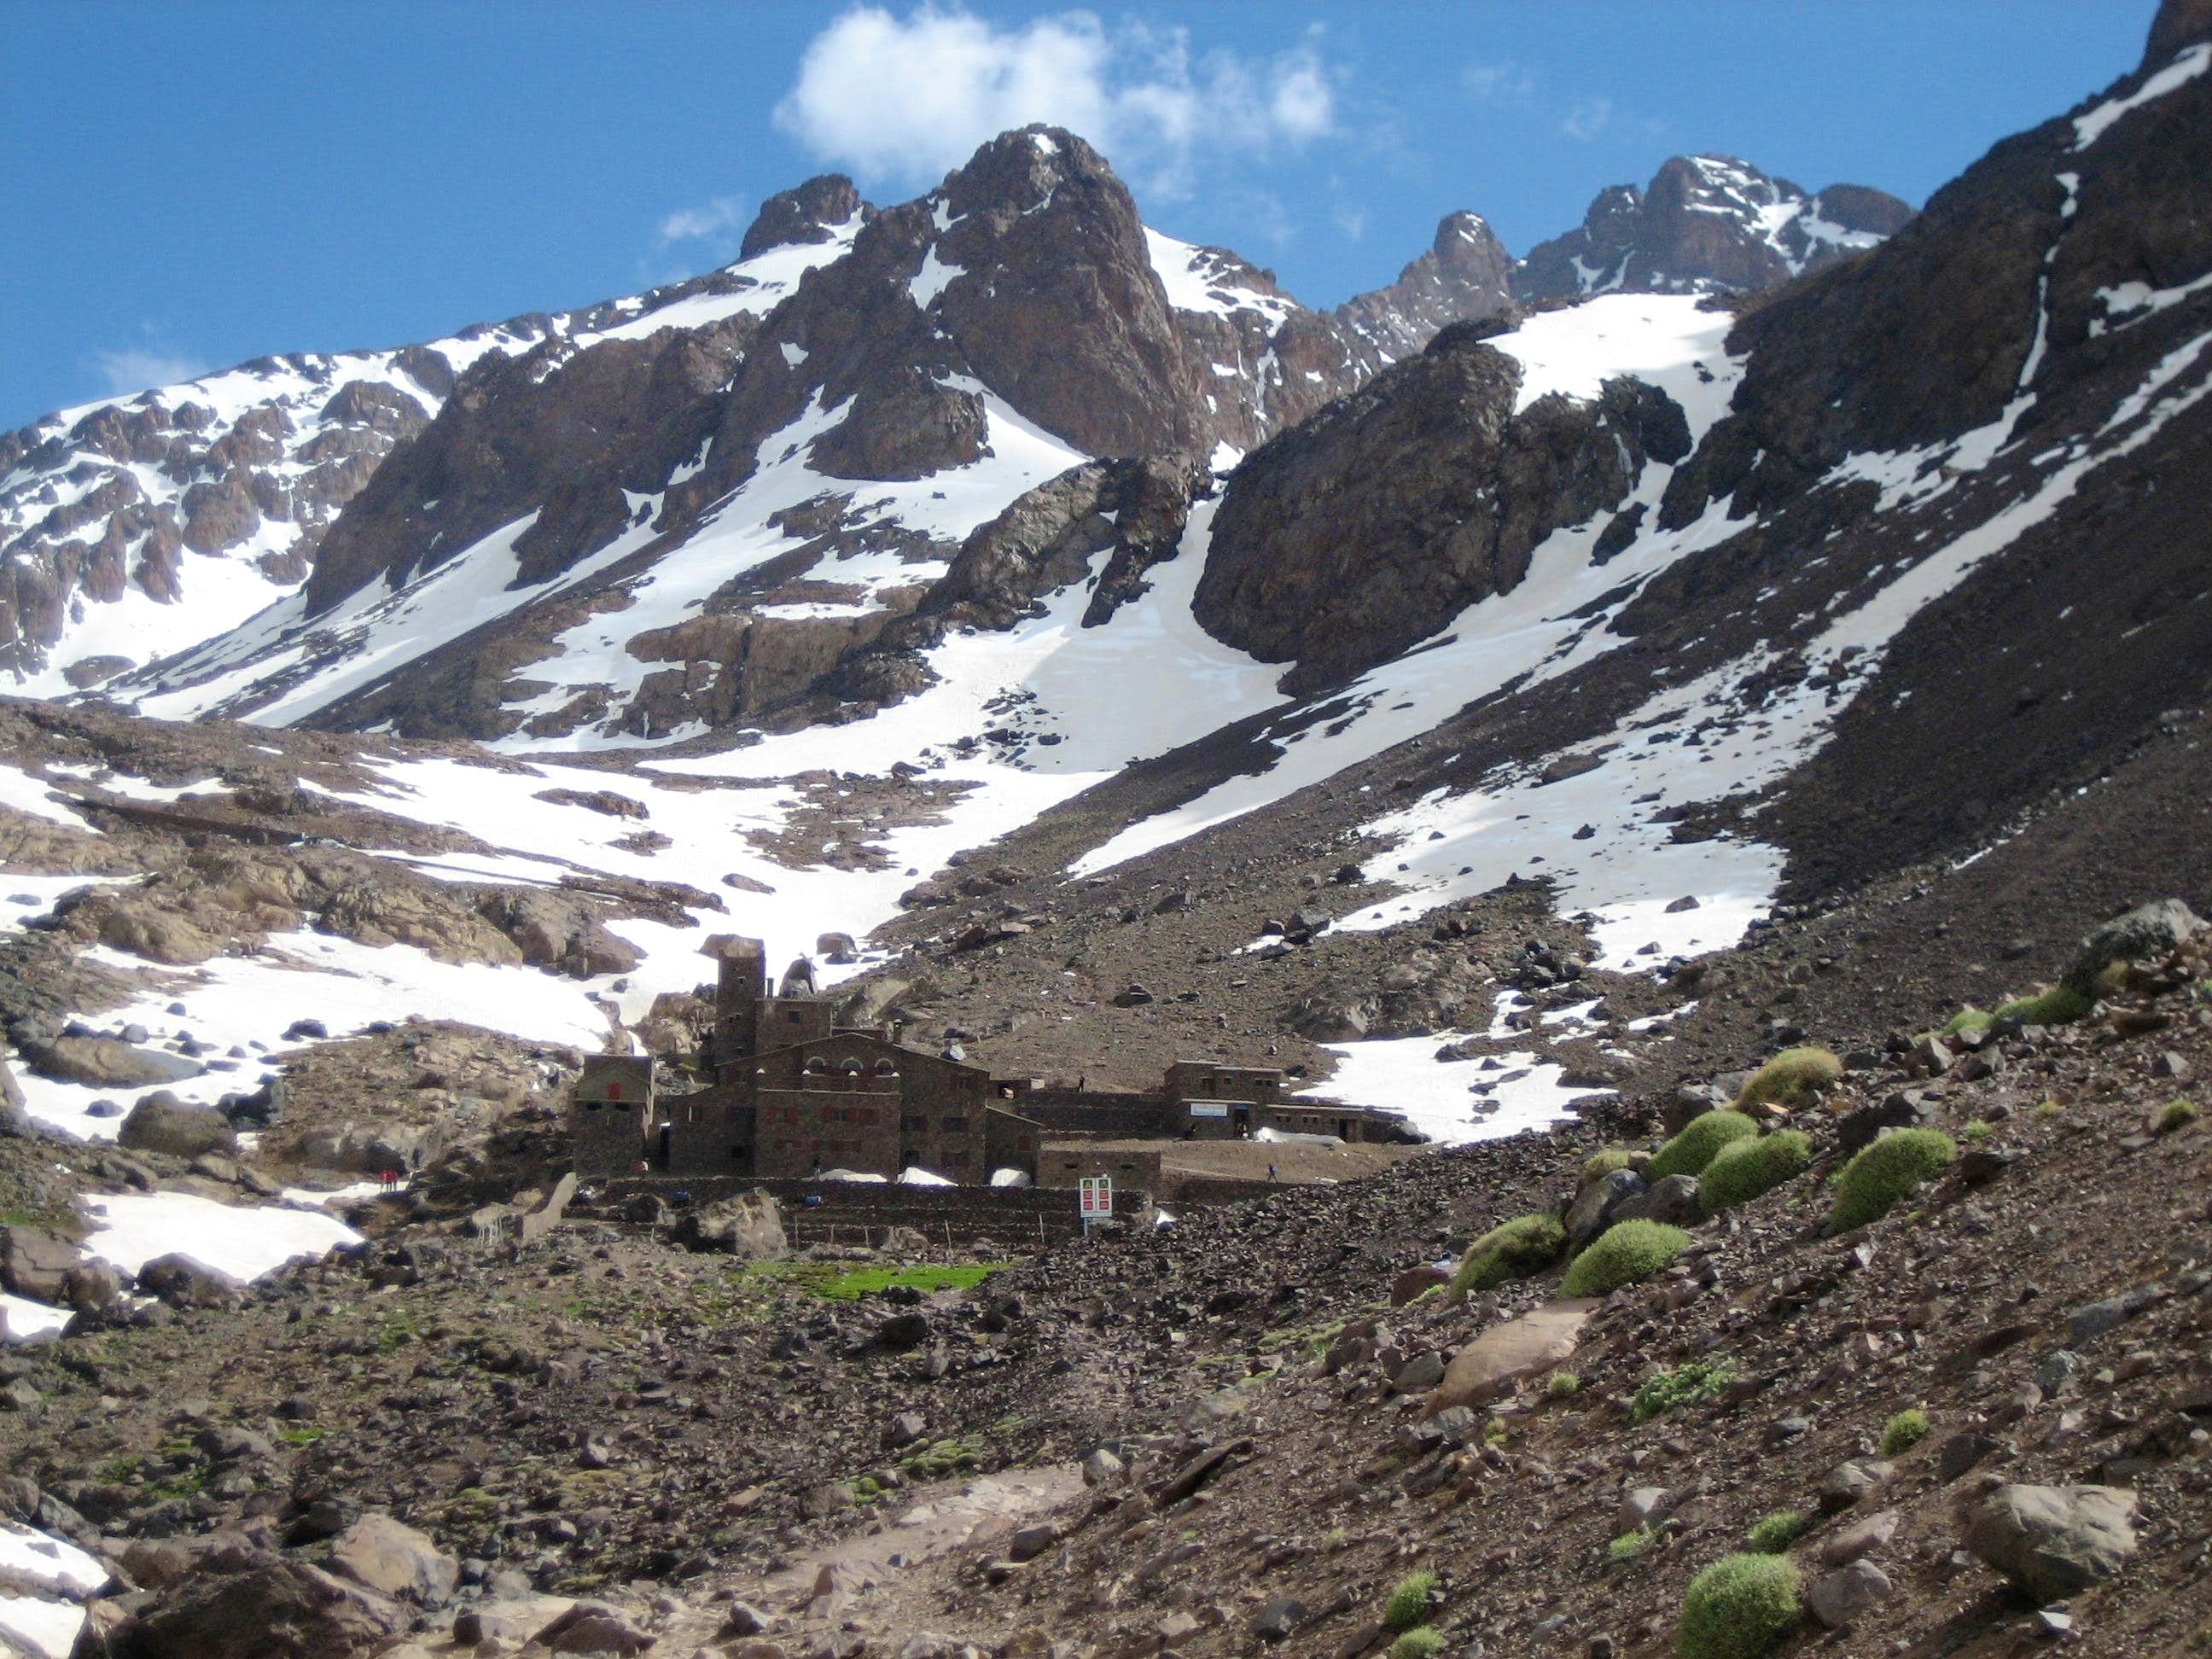 Jbel Toubkal: A Climb, A Culture, An Adventure